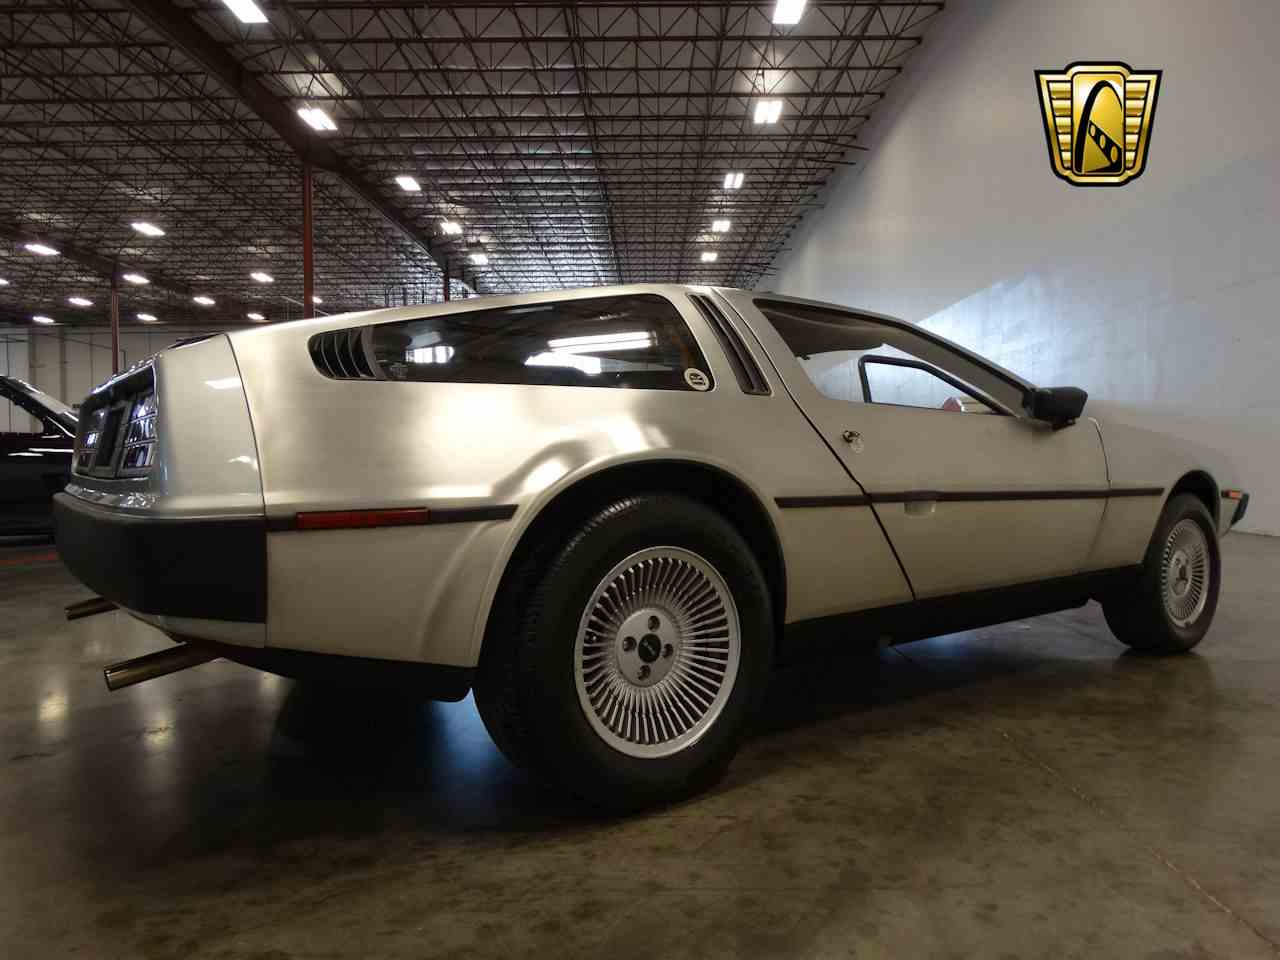 Large Picture of 1981 DeLorean DMC-12 - $29,995.00 Offered by Gateway Classic Cars - Nashville - M2L4